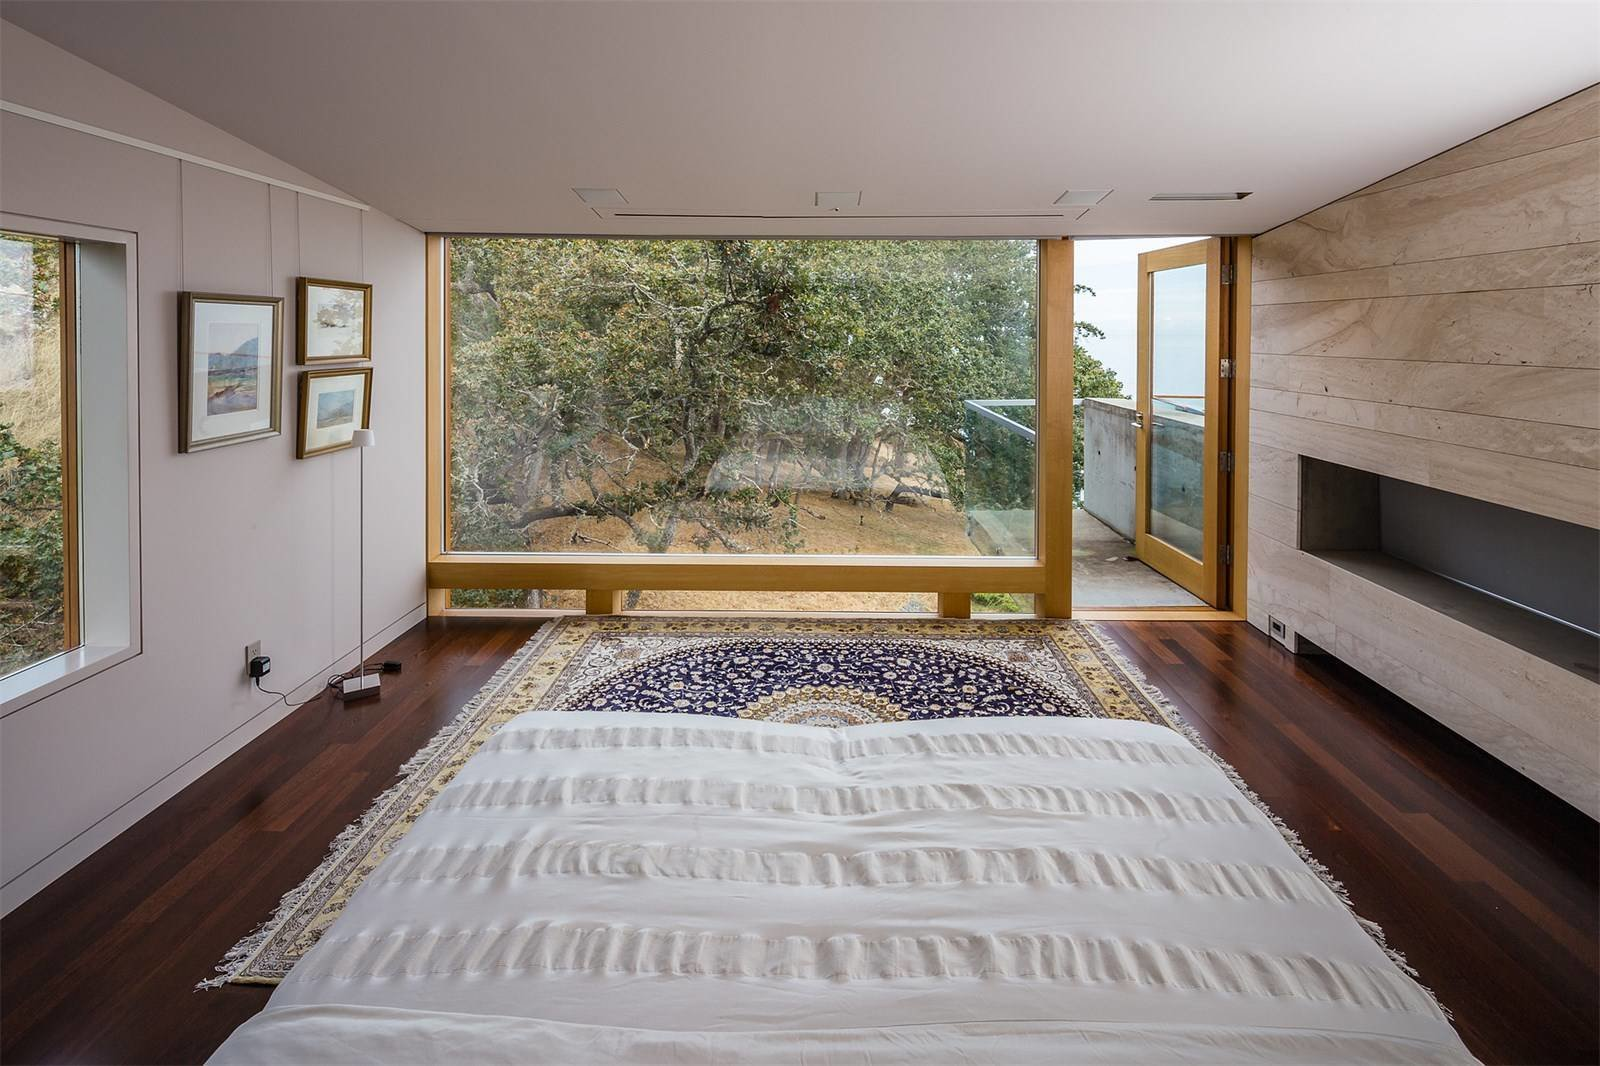 Bedroom, Rug, Floor, Ceiling, Bed, Lamps, and Dark Hardwood  Best Bedroom Lamps Dark Hardwood Photos from Award-Winning Oceanfront Property in BC Asks $19.9M